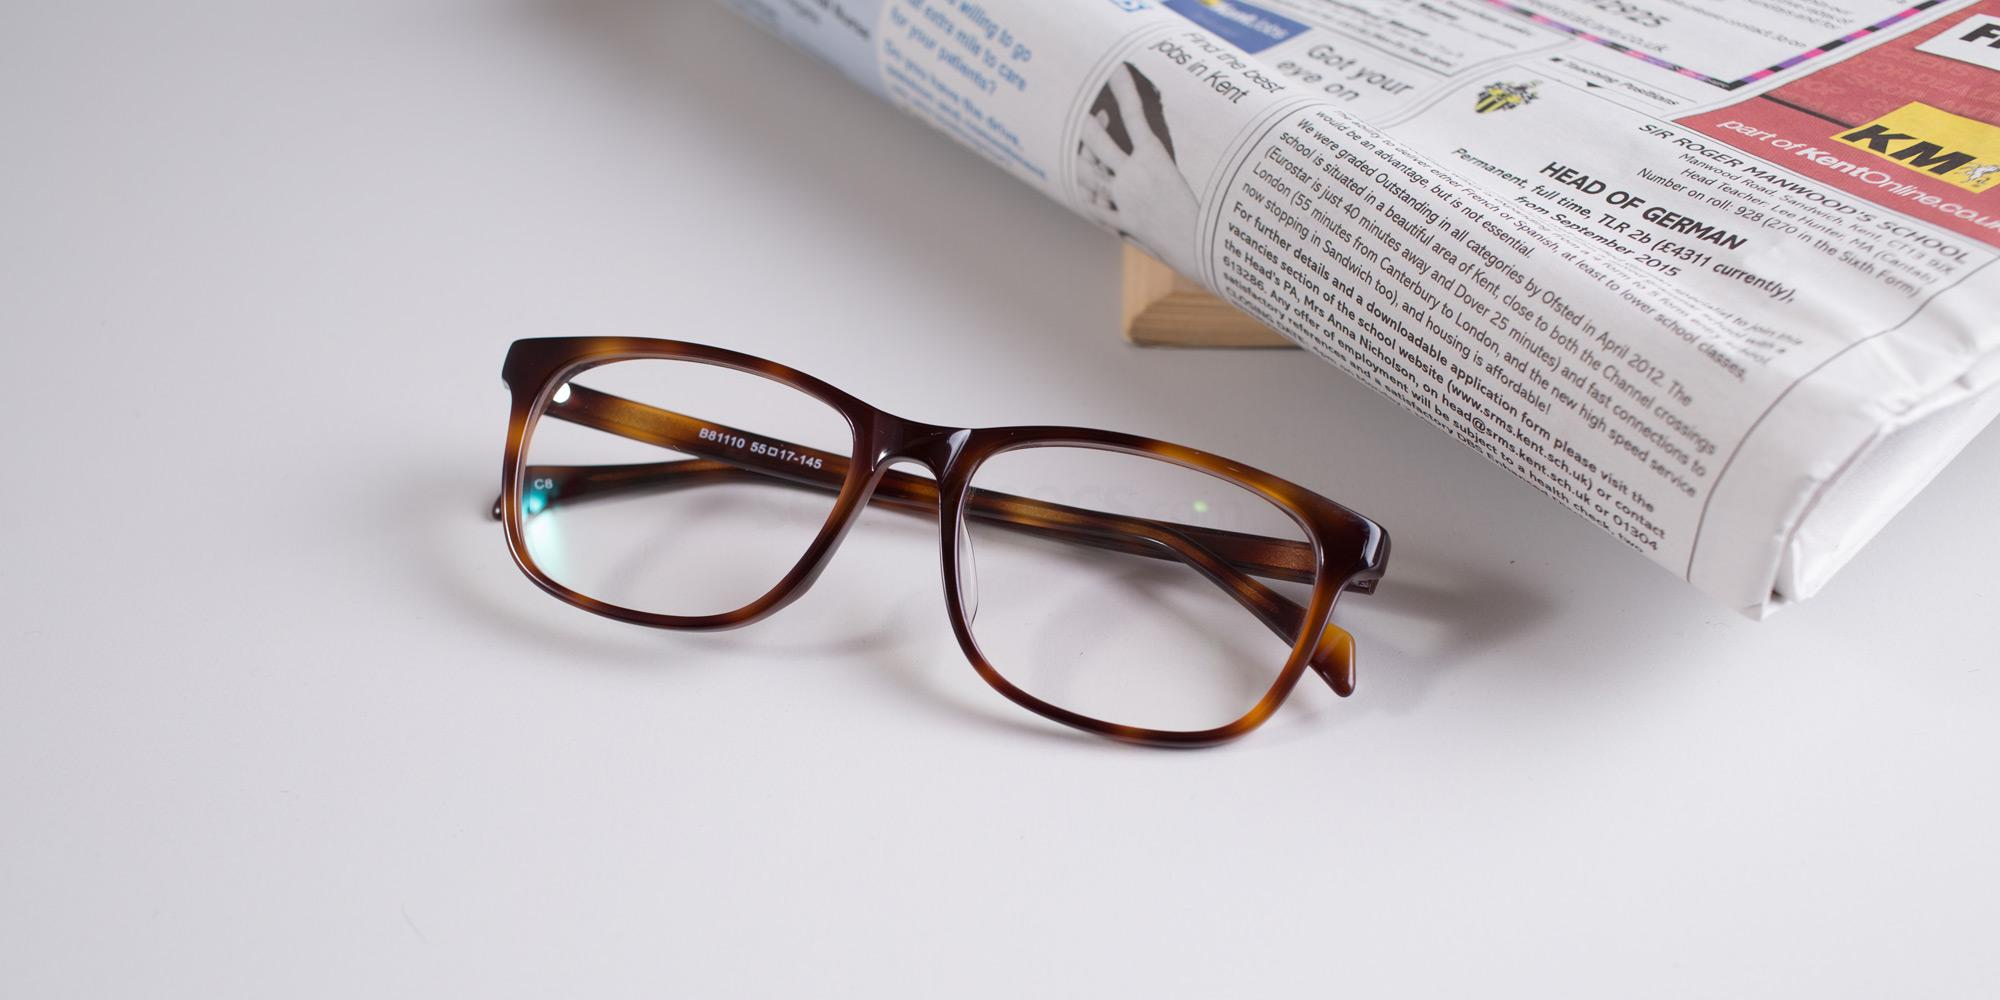 179b7c87cc0 Any type of optical goods which have been purchased online allows you to  send them back hassle free. If the glasses aren t quite what you are  expected or ...